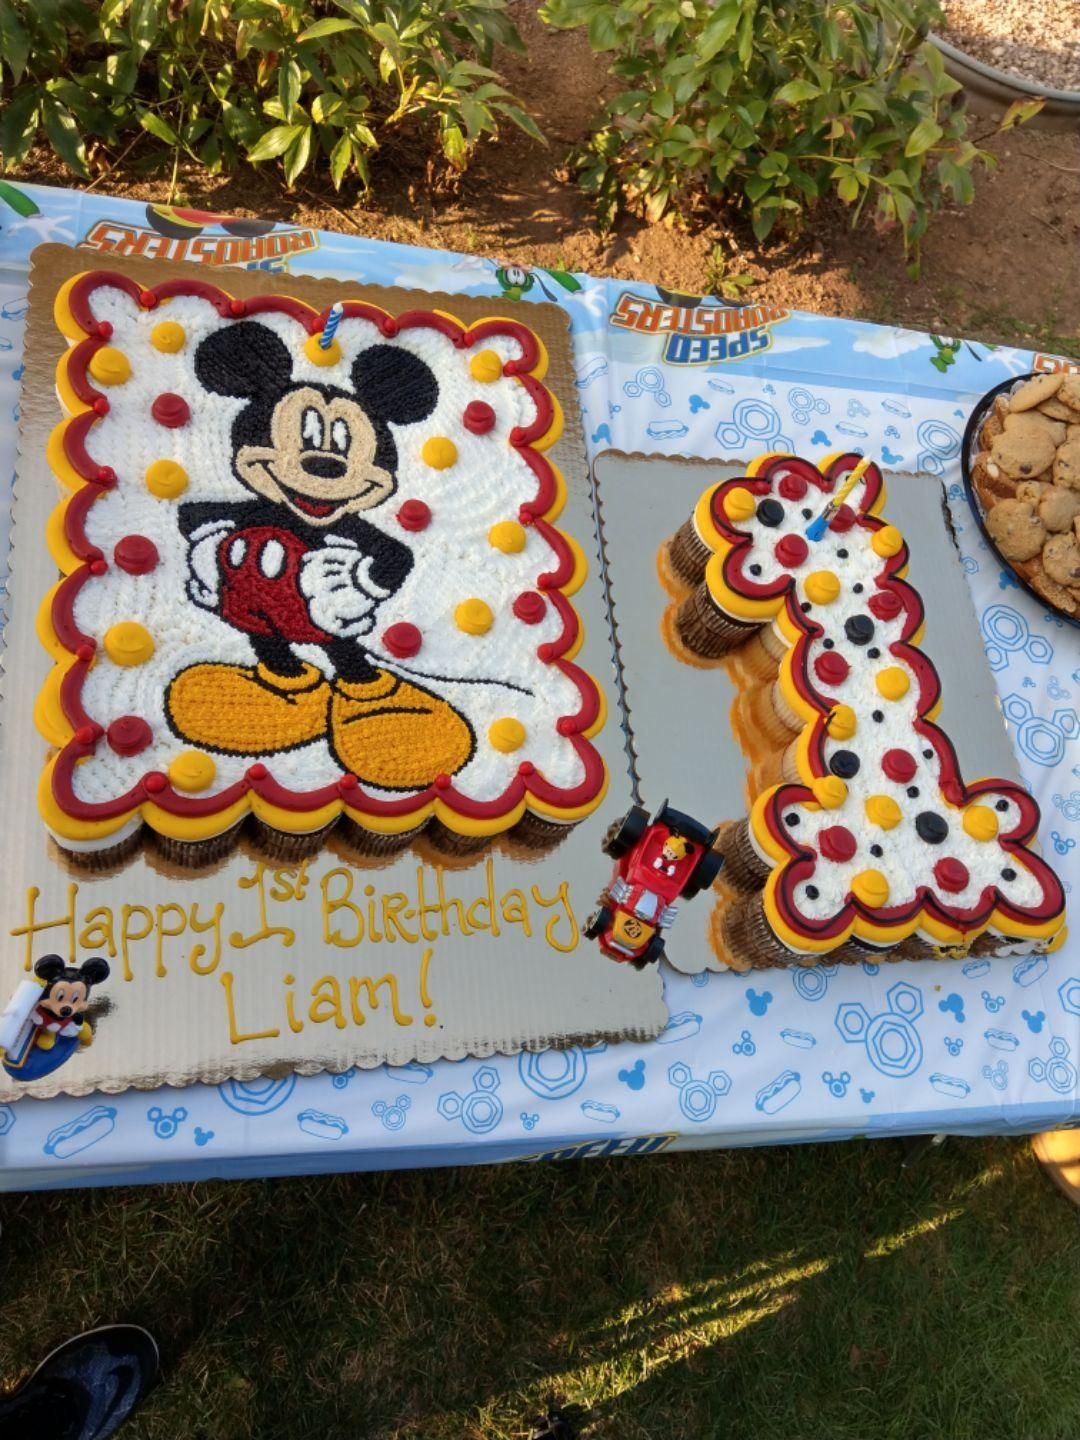 Wondrous Mickey Mouse Pull Apart Cupcake Cake For Liams First Birthday Birthday Cards Printable Riciscafe Filternl